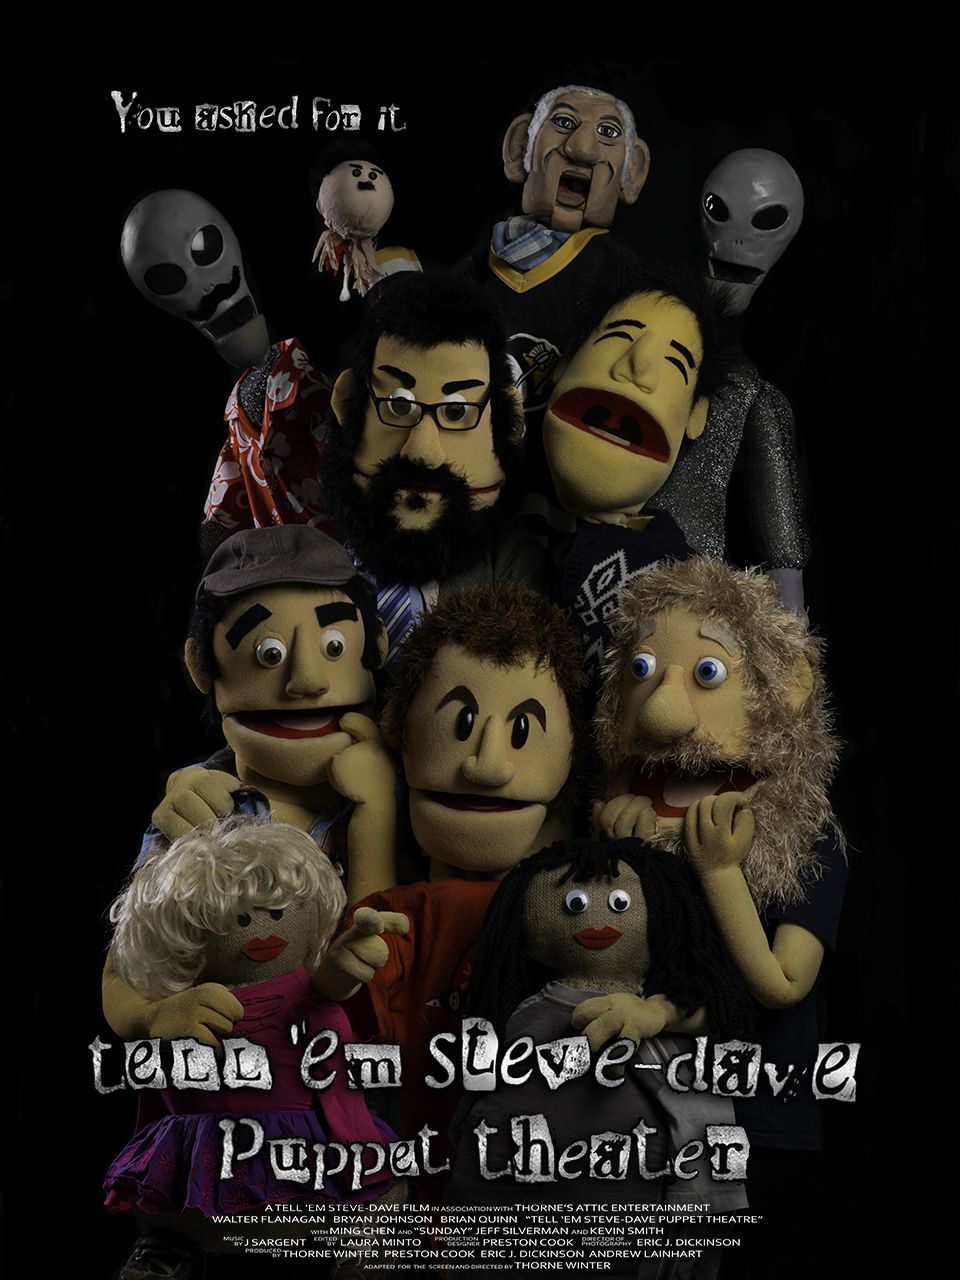 We made the 'Sunday Jeff' Puppet for the TESD Puppet